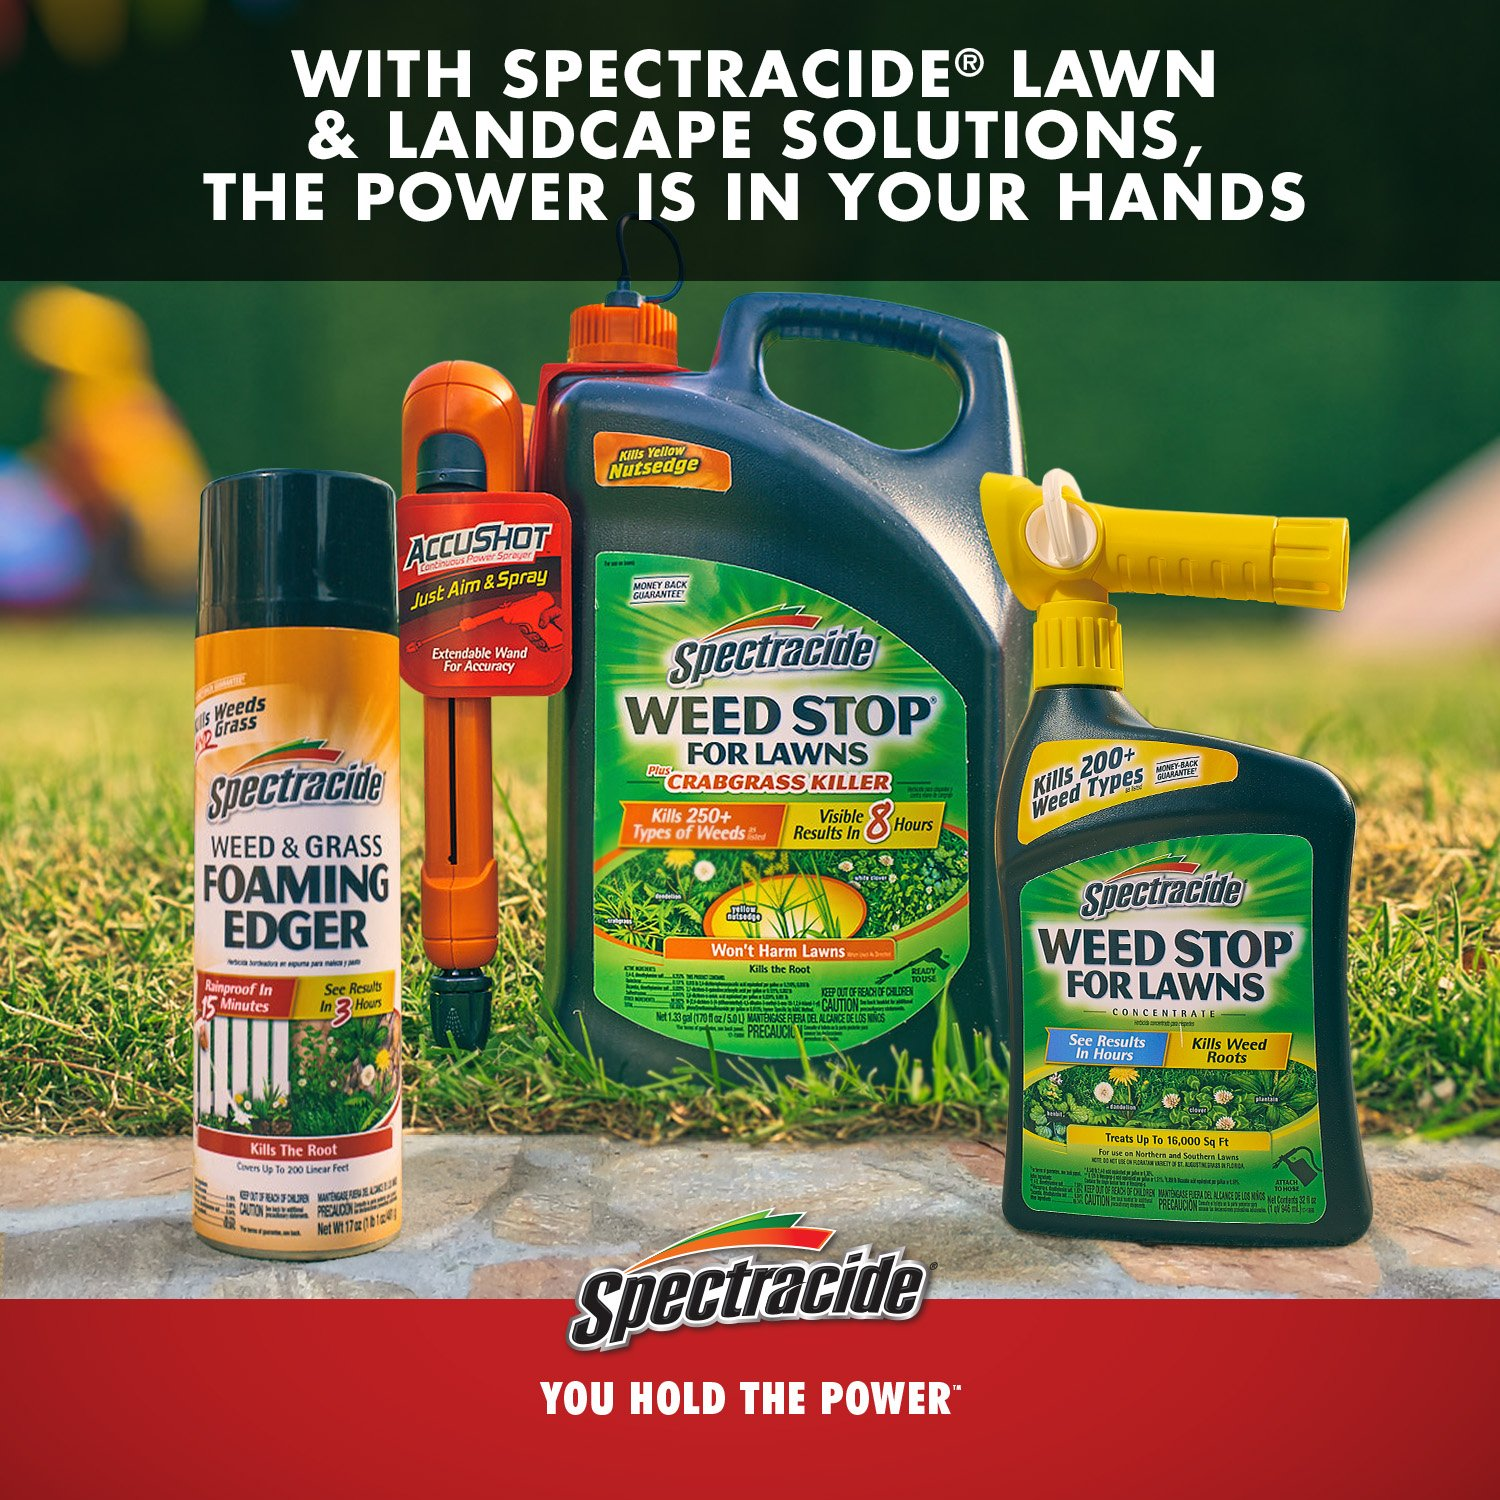 Spectracide Weed & Grass Killer2 (AccuShot Sprayer) by Spectracide (Image #4)